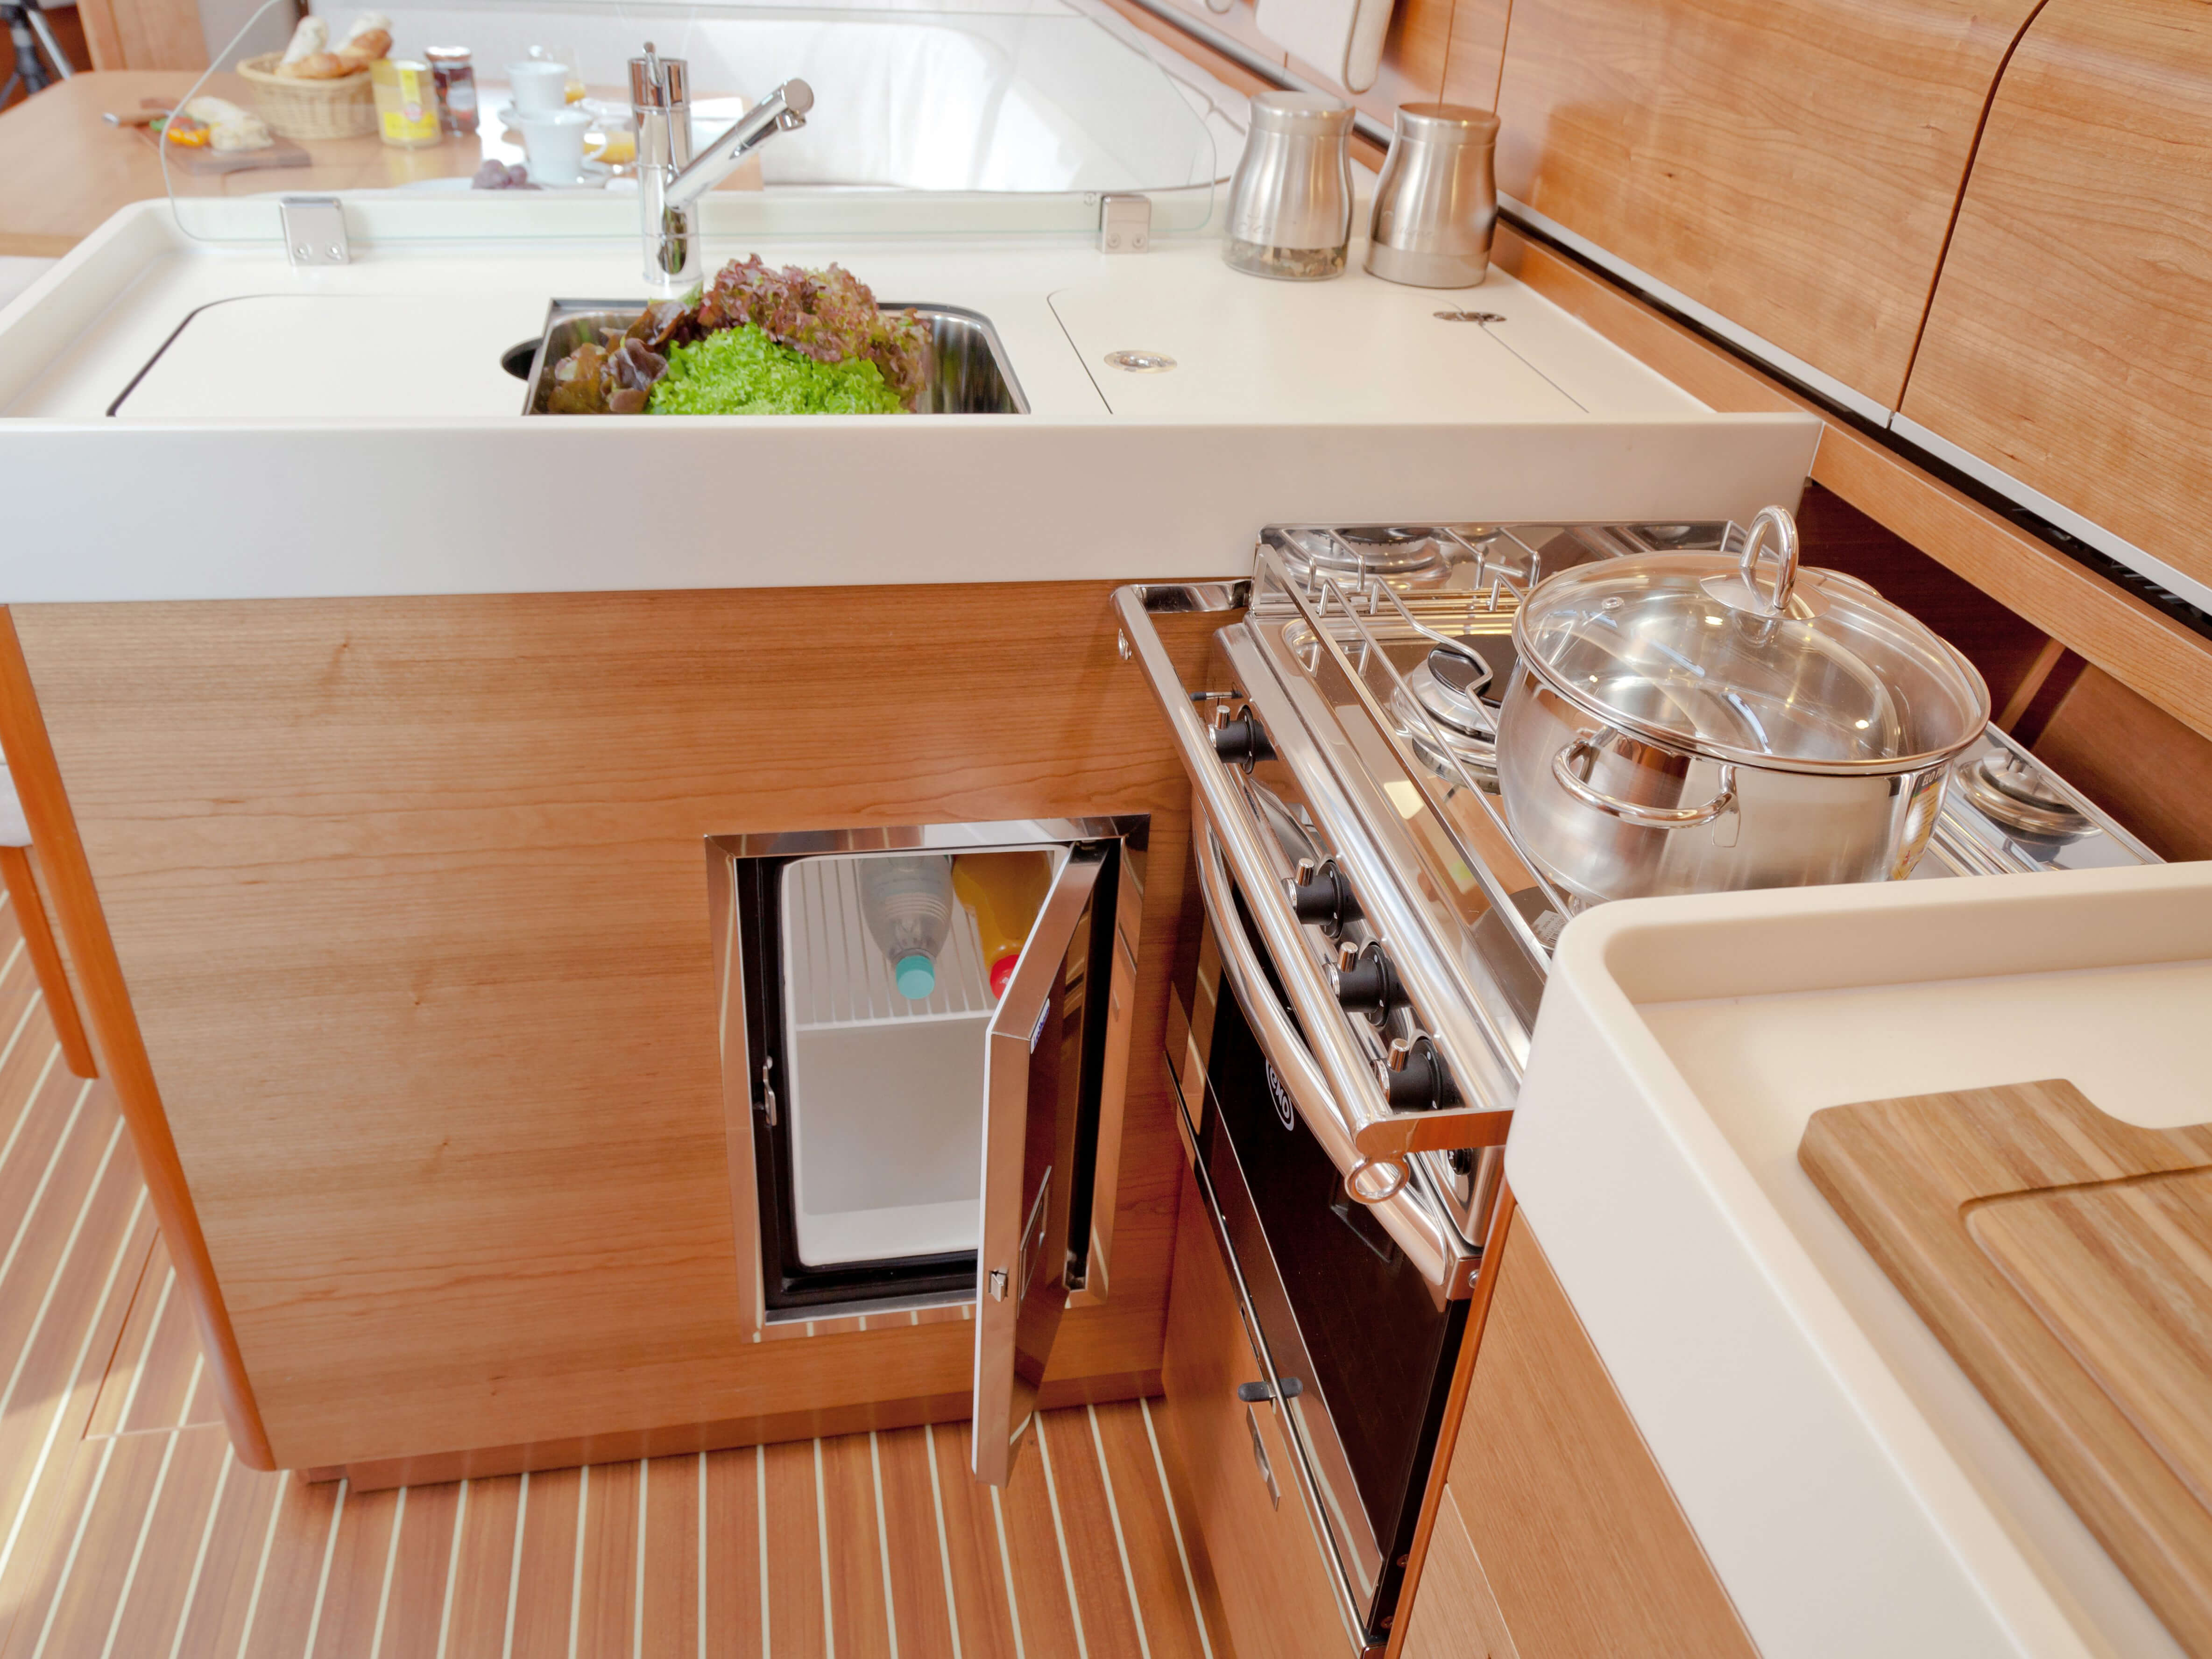 Dehler 46 Interior view pantry | sink, stove, fridge | Dehler